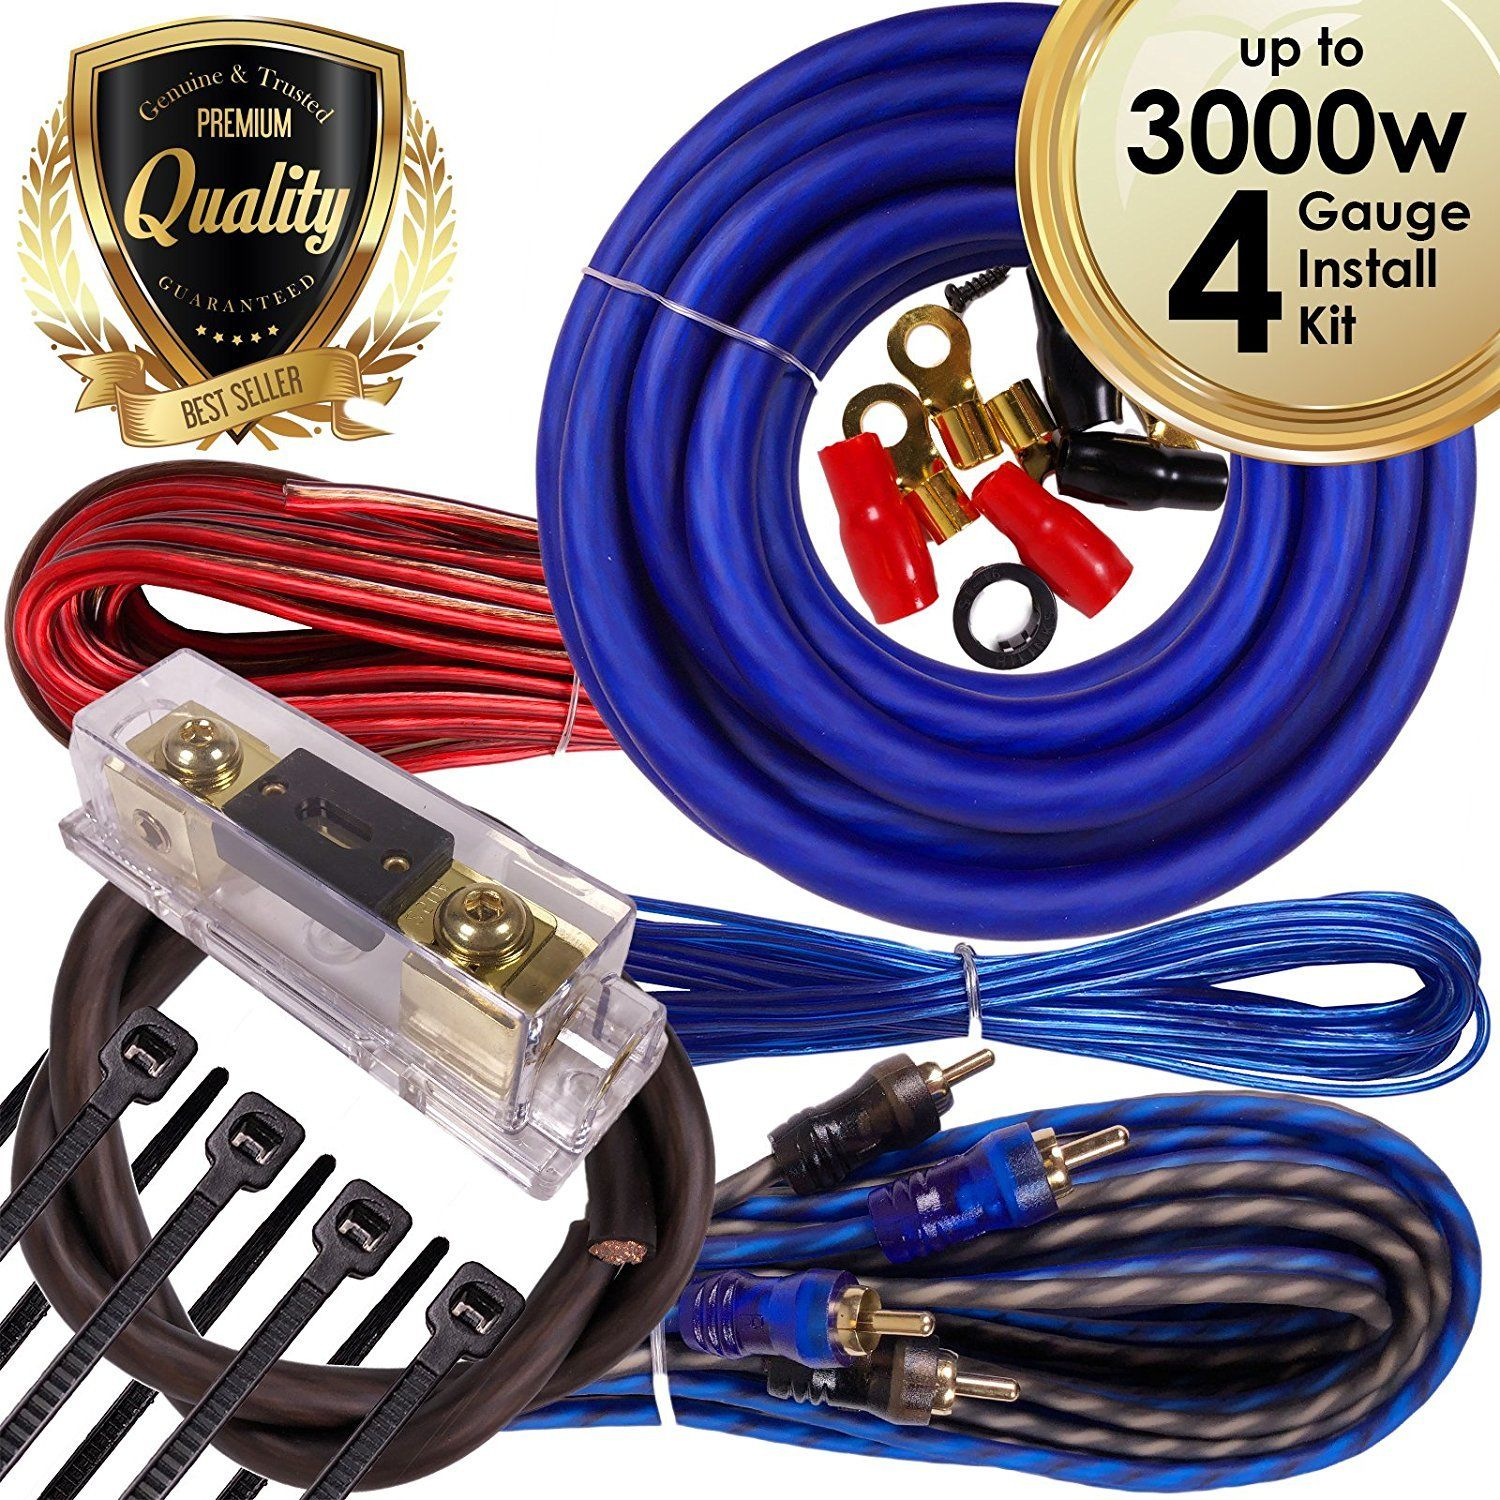 hight resolution of complete 3000w 4 gauge car amplifier installation wiring kit amp pk1 amp wiring kit specifications